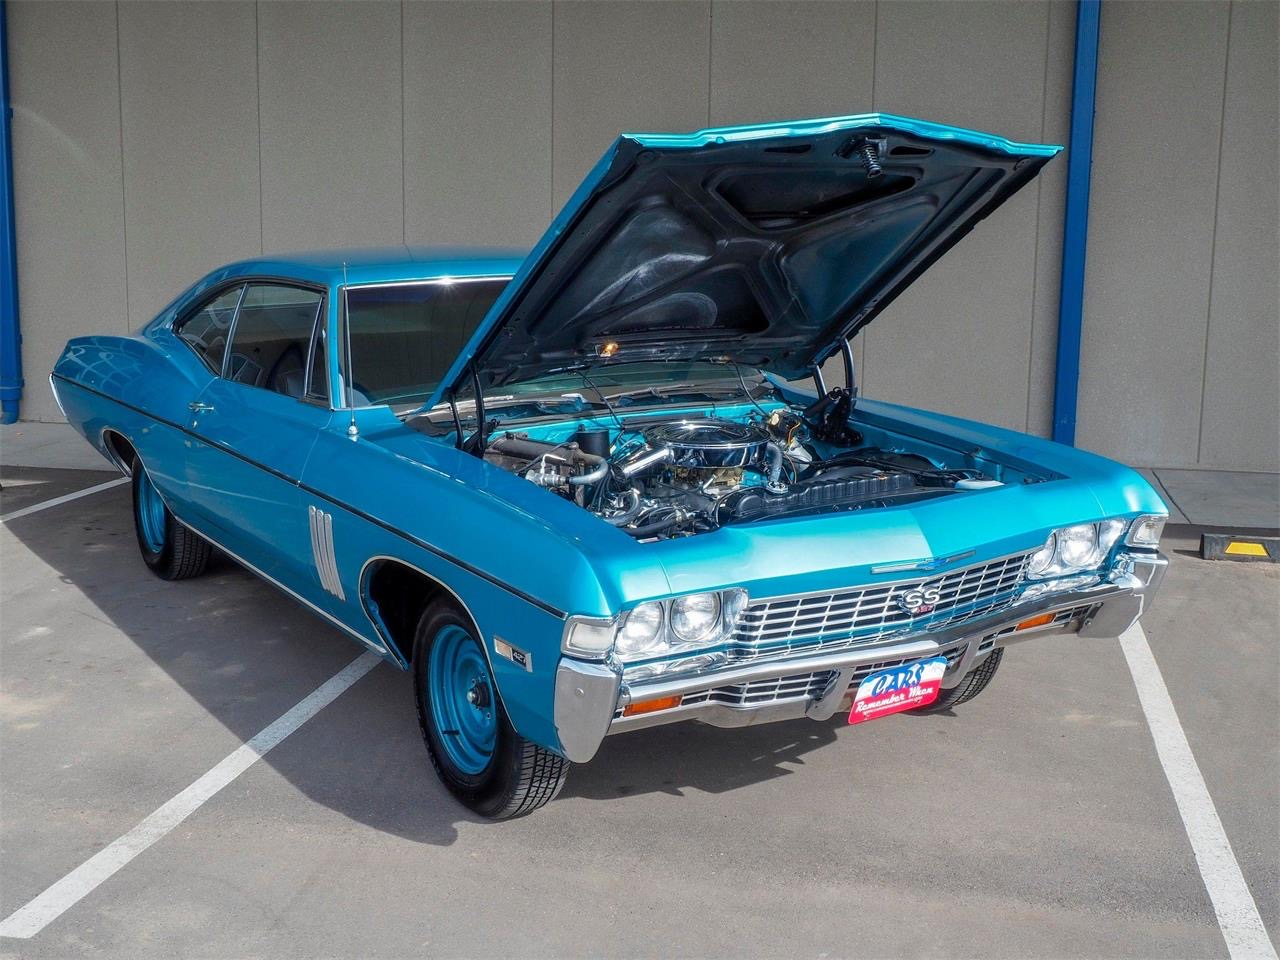 1968 Chevrolet Impala, One-owner '68 Impala SS Sport Coupe with 427, ClassicCars.com Journal